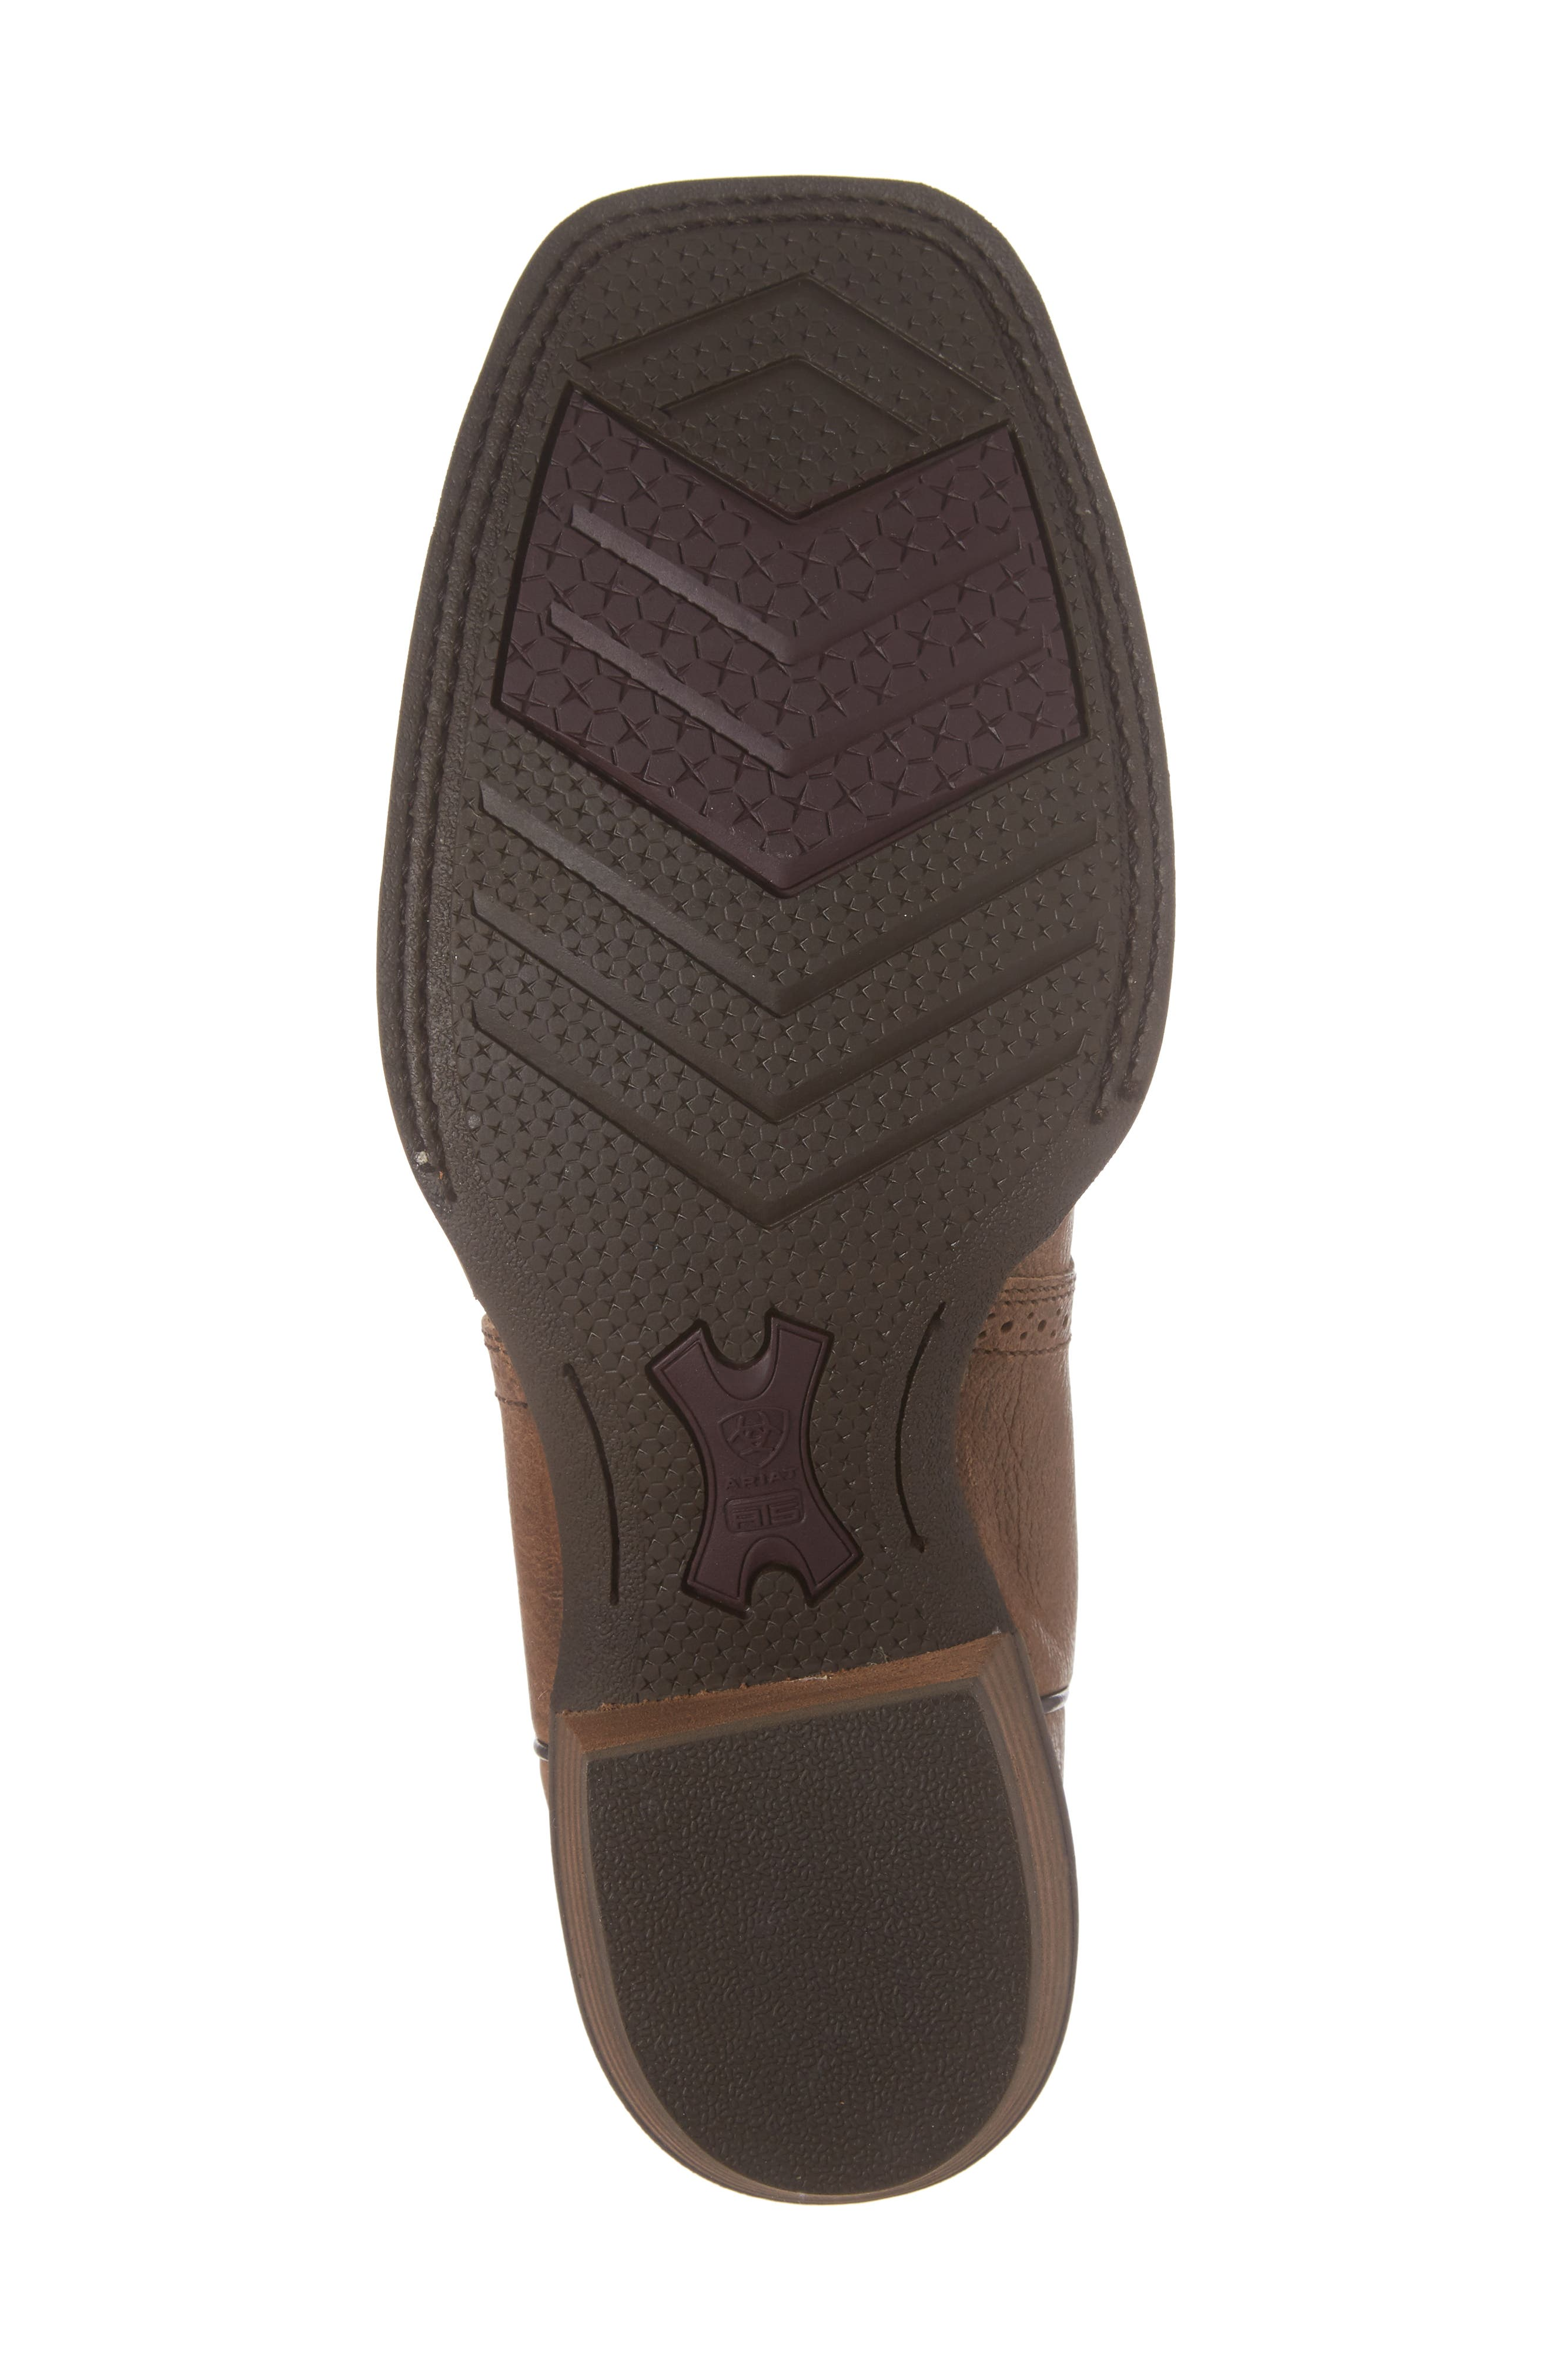 Heritage Hot Shot Cowboy Boot,                             Alternate thumbnail 6, color,                             Brown